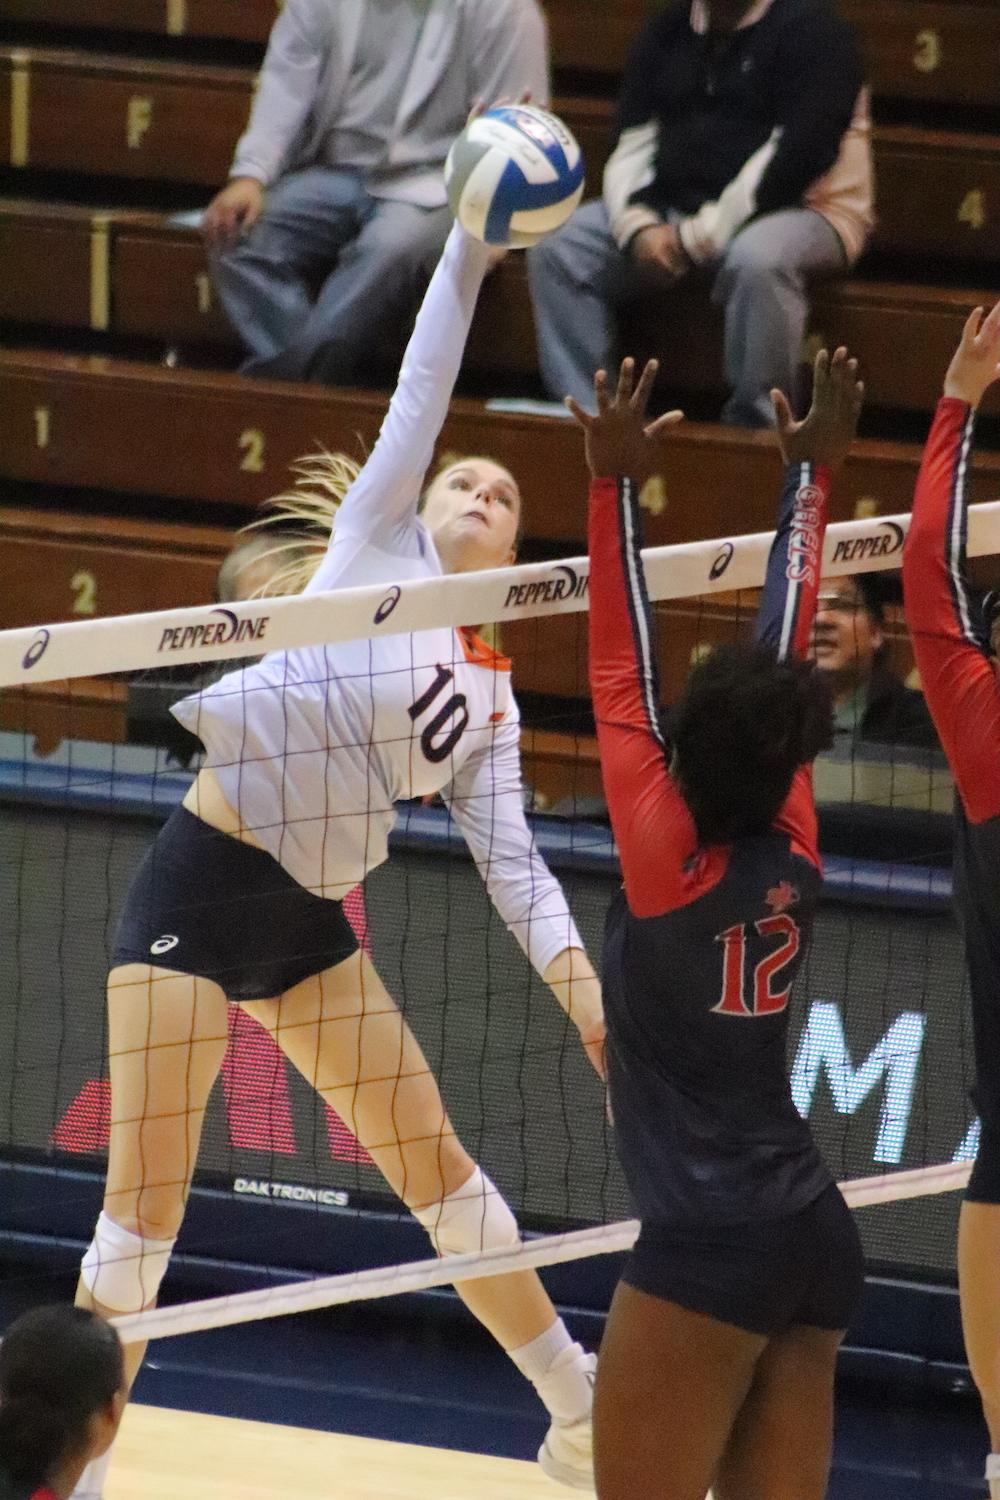 Senior outside hitter Shannon Scully goes up for a kill against a blocker from Saint Mary's University on Nov. 14, 2019. The Waves swept the Gaels at home for their eleventh league win. File photo